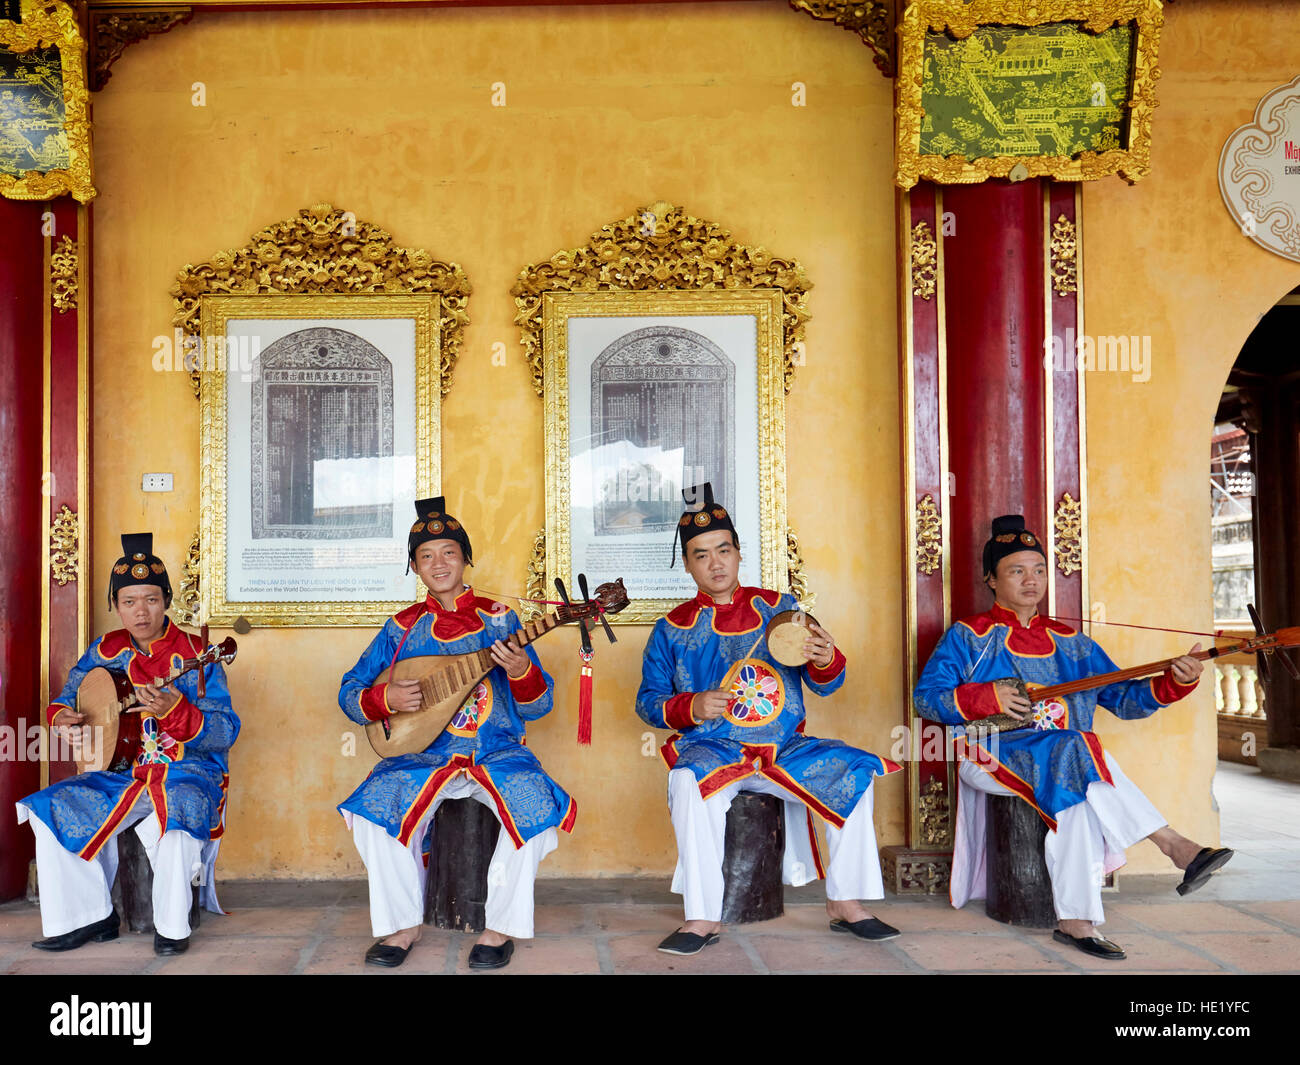 Musicians play traditional music in Can Thanh Palace (Emperor's Private Palace). Imperial City, Hue, Vietnam. Stock Photo